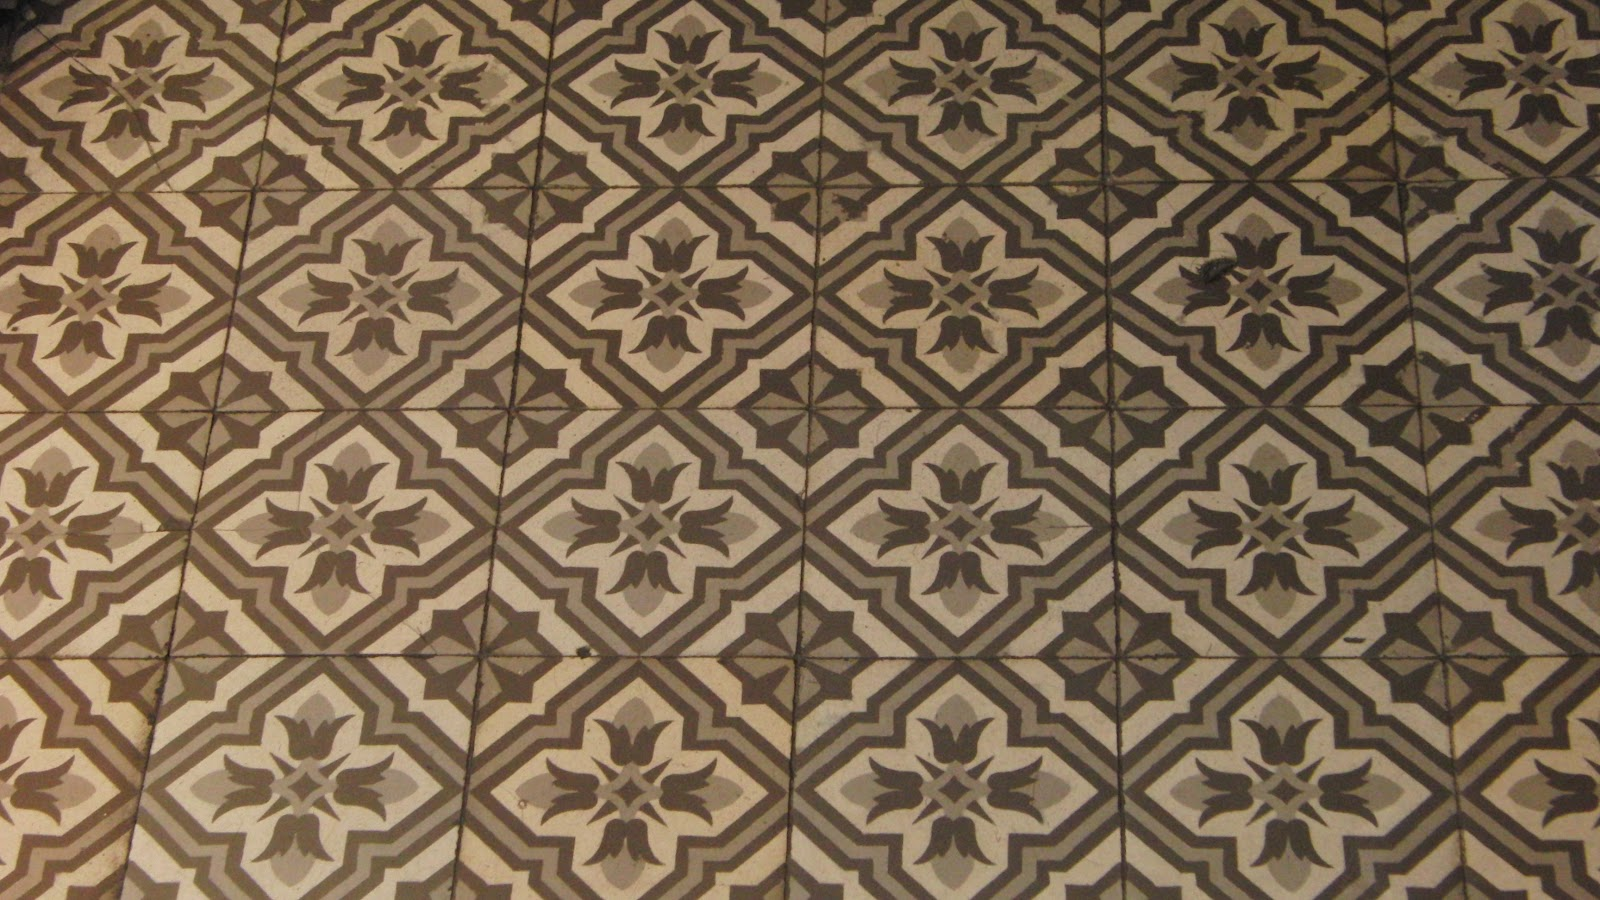 Cement tiles zementfliesen mosaicos hidrulicos floor tiles in floor tiles in paris dailygadgetfo Gallery